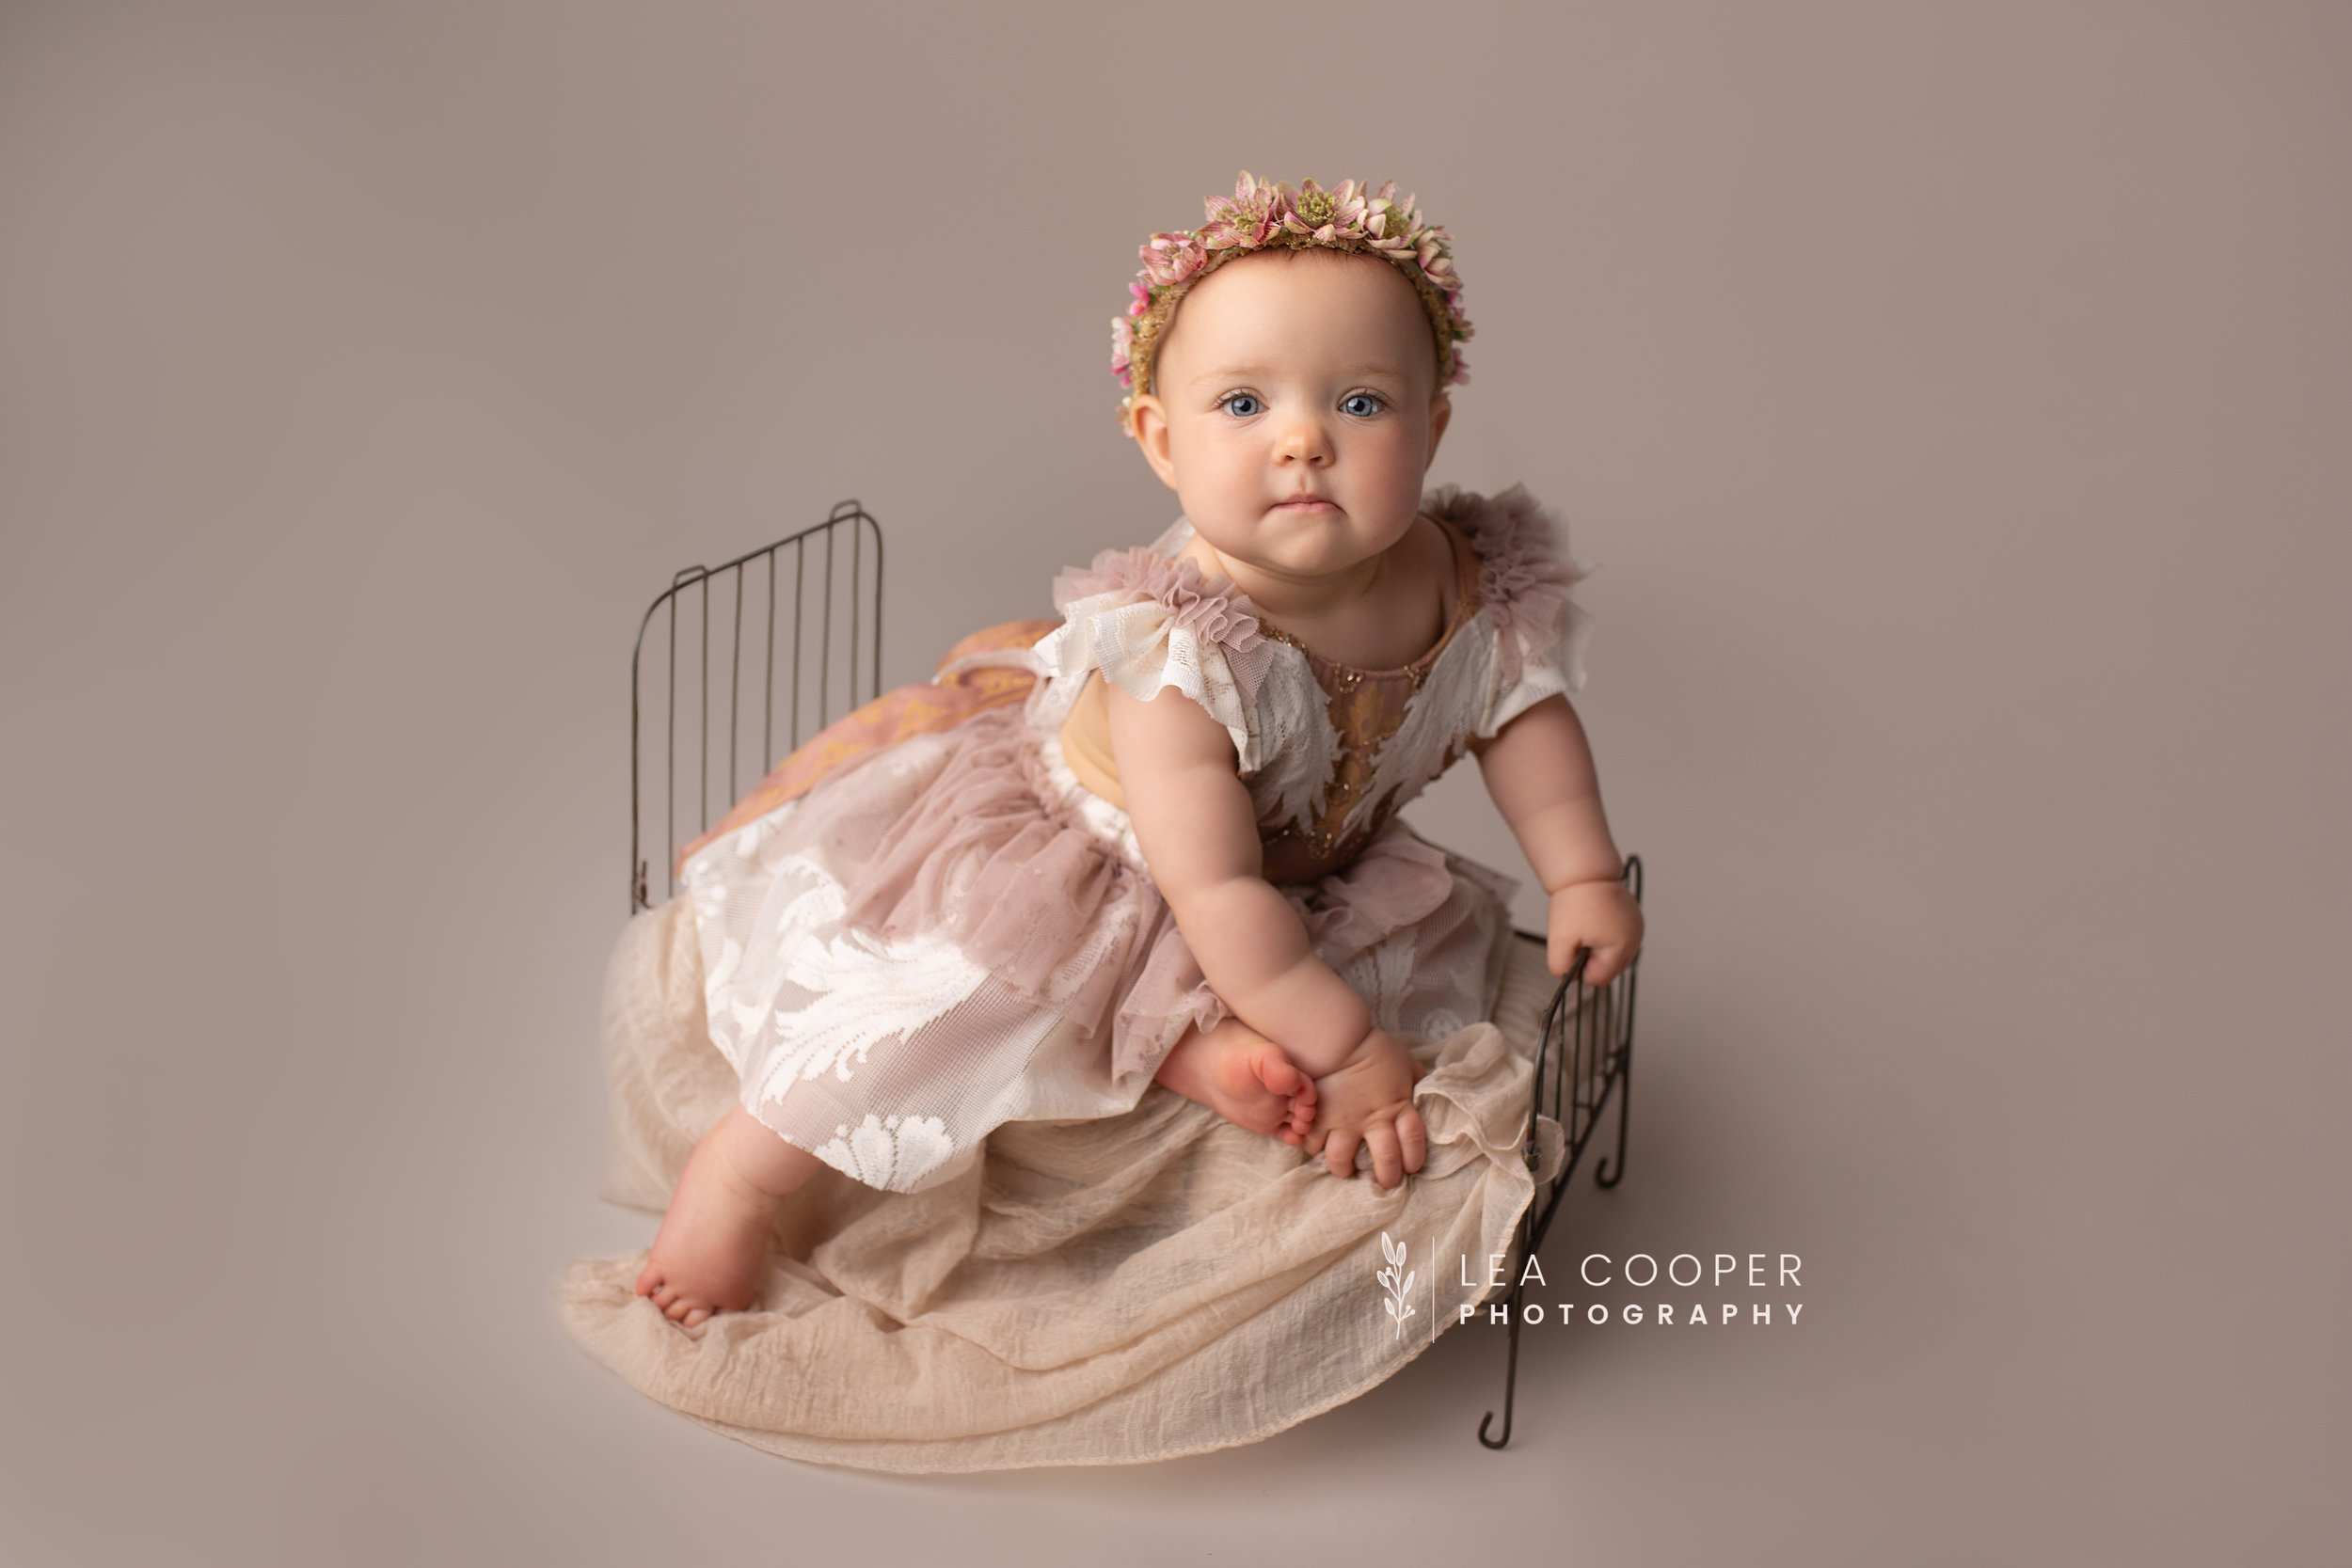 LEA-COOPER-PHOTOGRAPHY-CAKE-SMASH-SESSION-BIRTHDAY-PHOTOS-1ST-BIRTHDAY-SPLASH-SESSION-SMASH-SESSION-CHILDRENS-PHOTOGRAPHY-WILLENHALL-WOLVERHAMPTON-BIRMINGHAM-WEST-MIDLANDS-UK-3.jpg